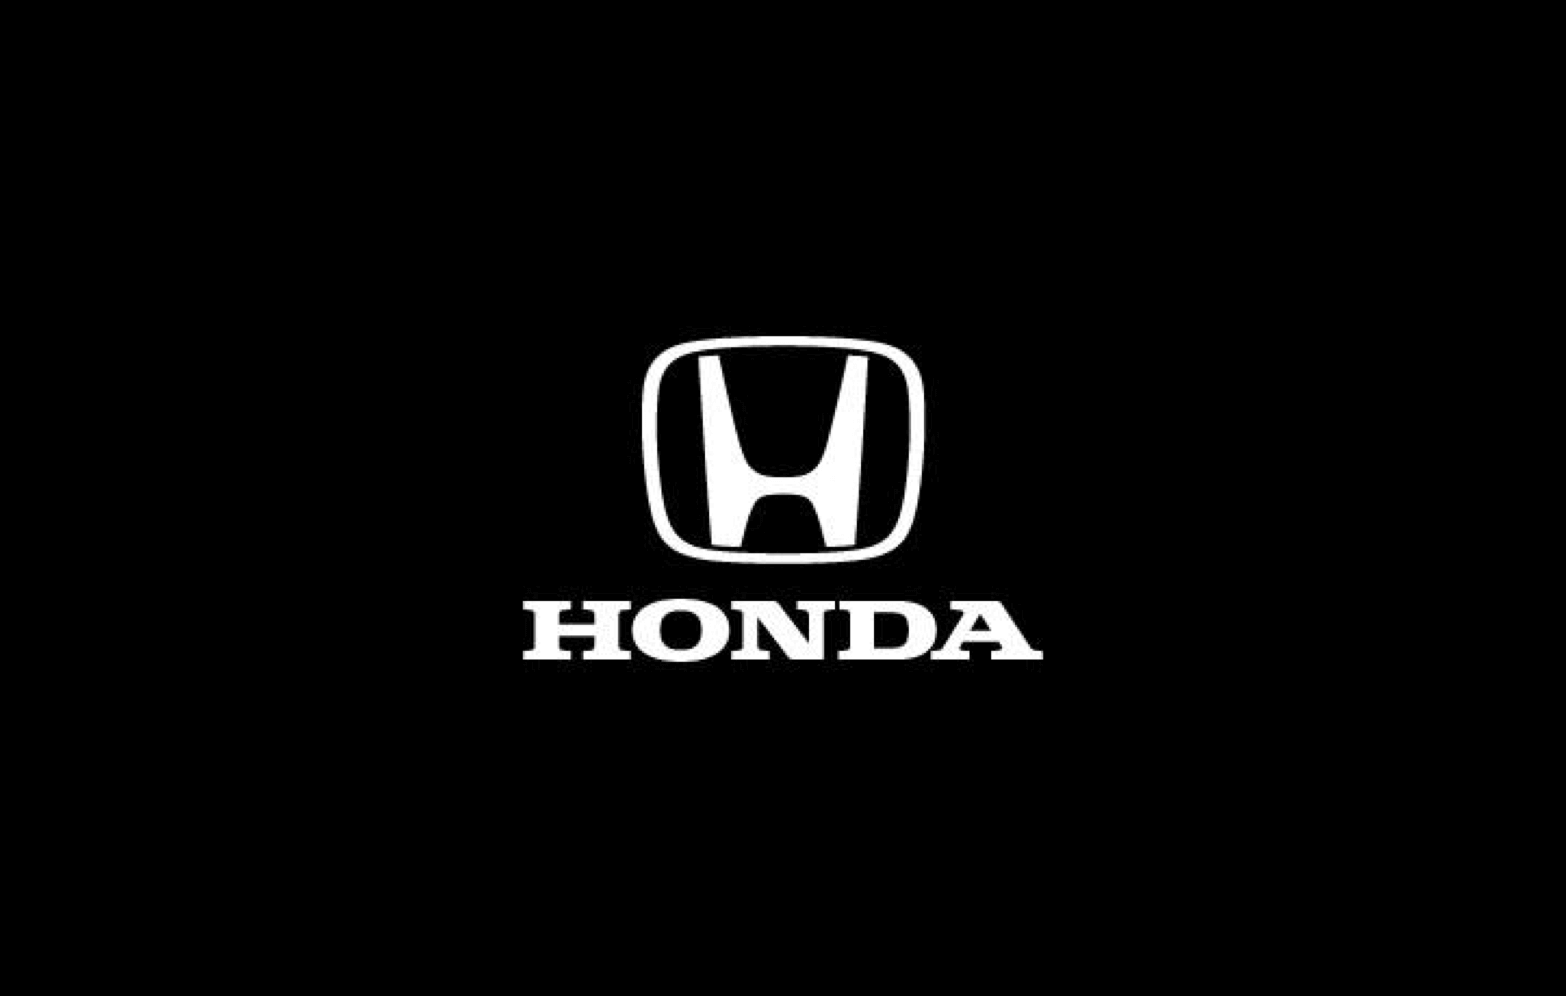 Honda Announces Plans to Go All-Electric by 2040